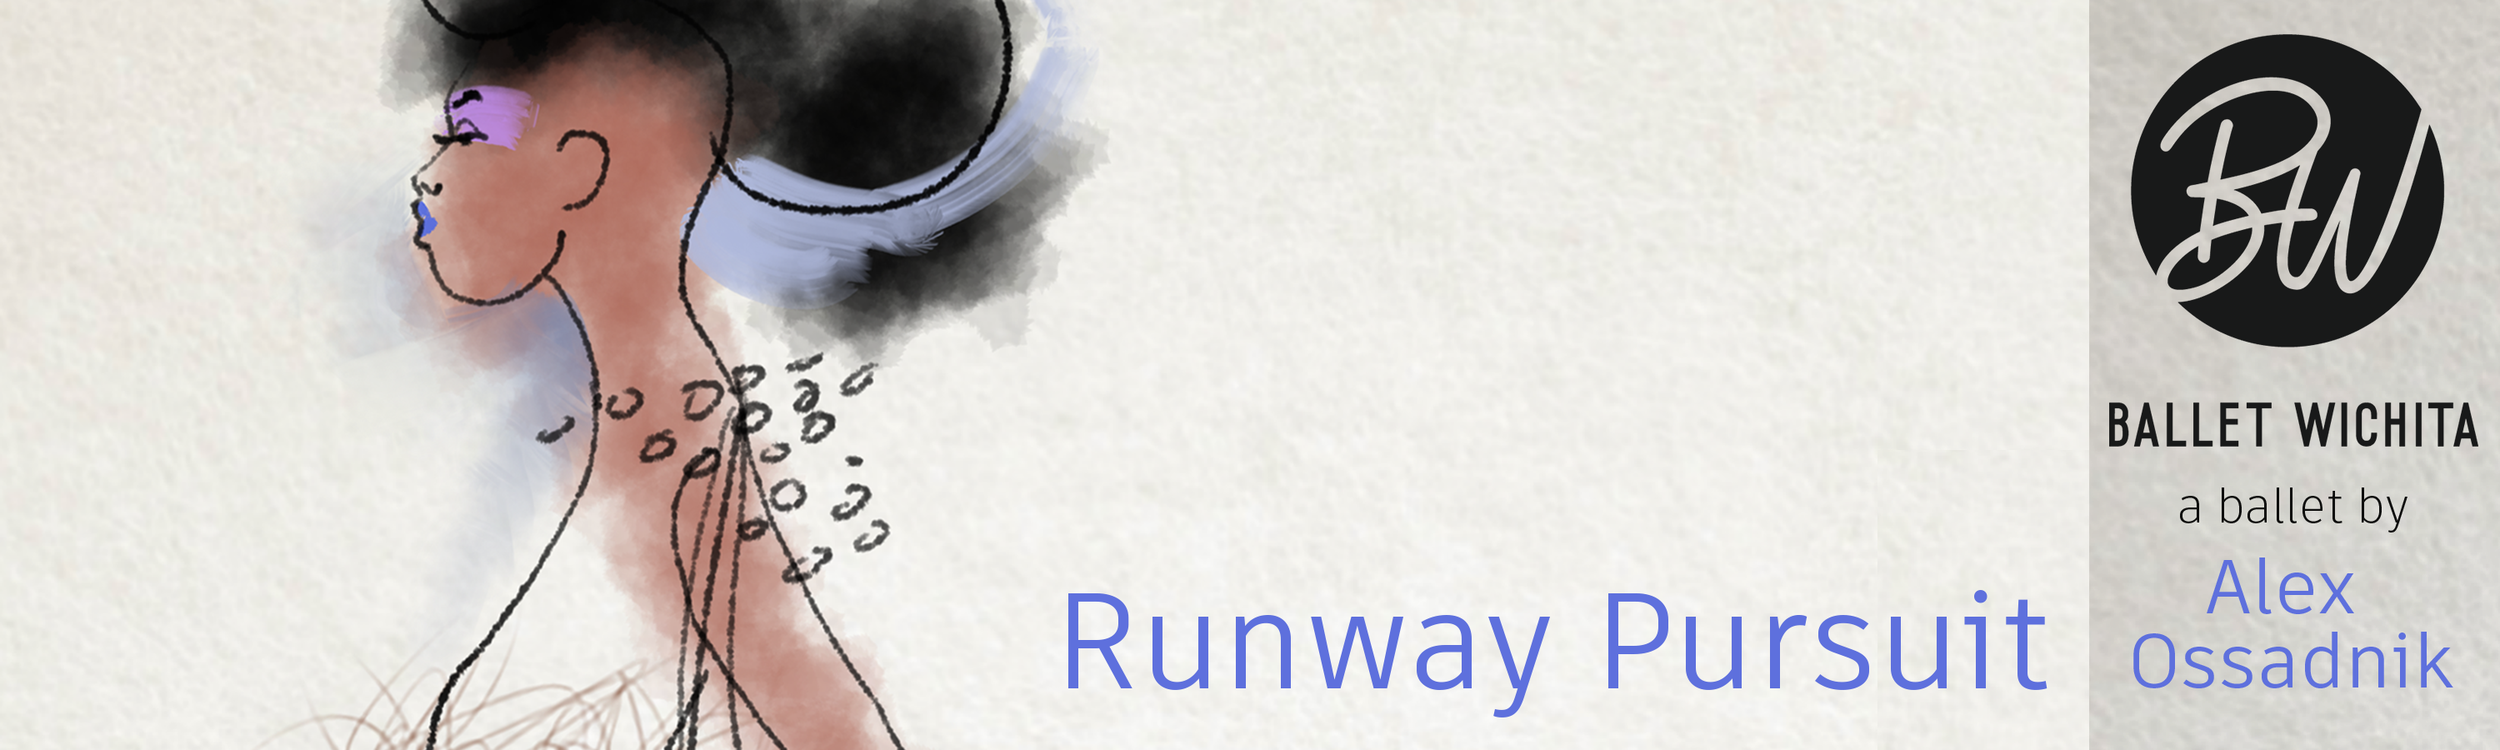 RunwayPursuit_headerBanner.png